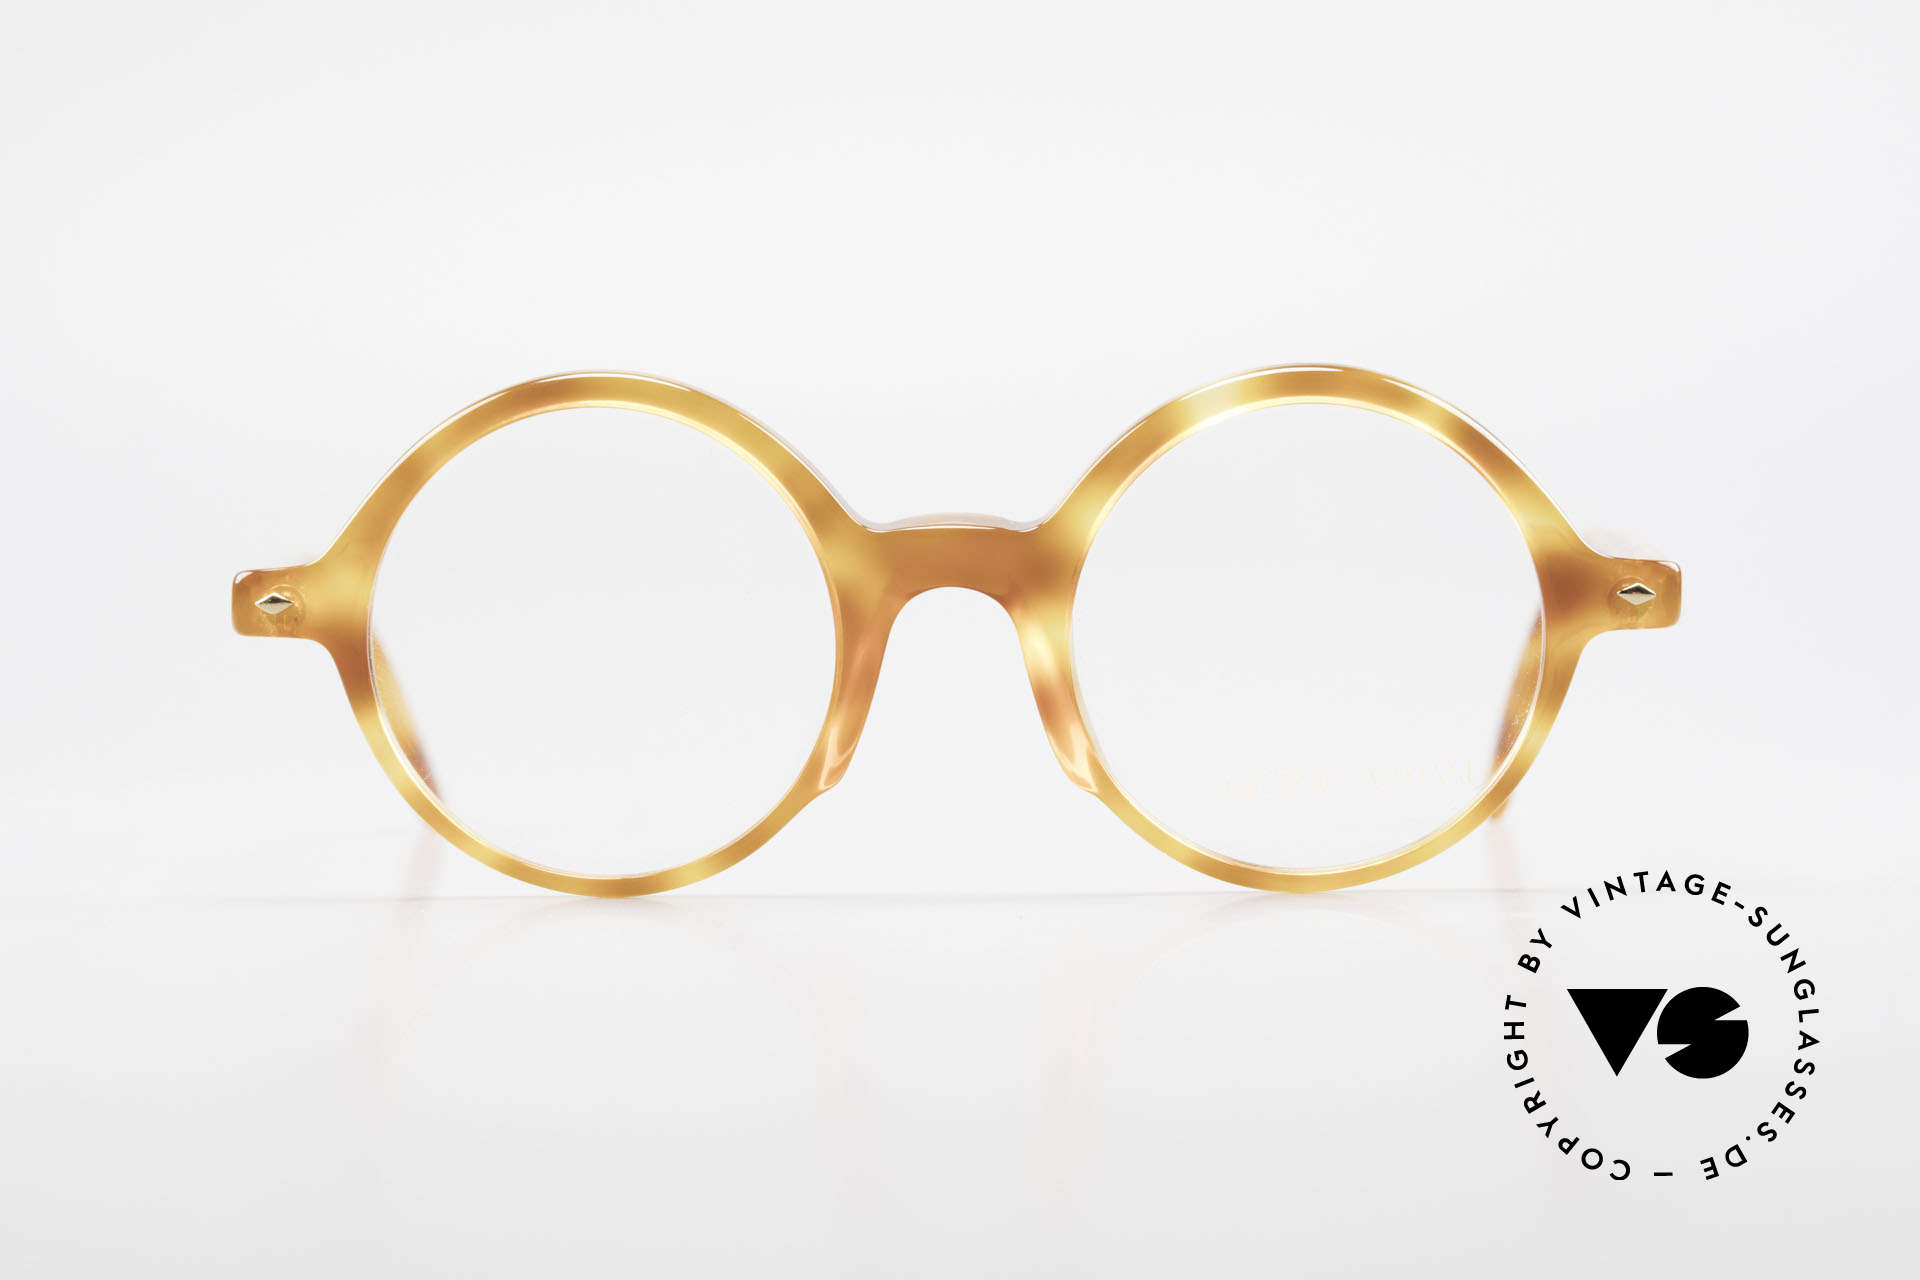 Giorgio Armani 319 Old 1980's Eyeglasses Round, round frame design with interesting 'tortoise' pattern, Made for Men and Women